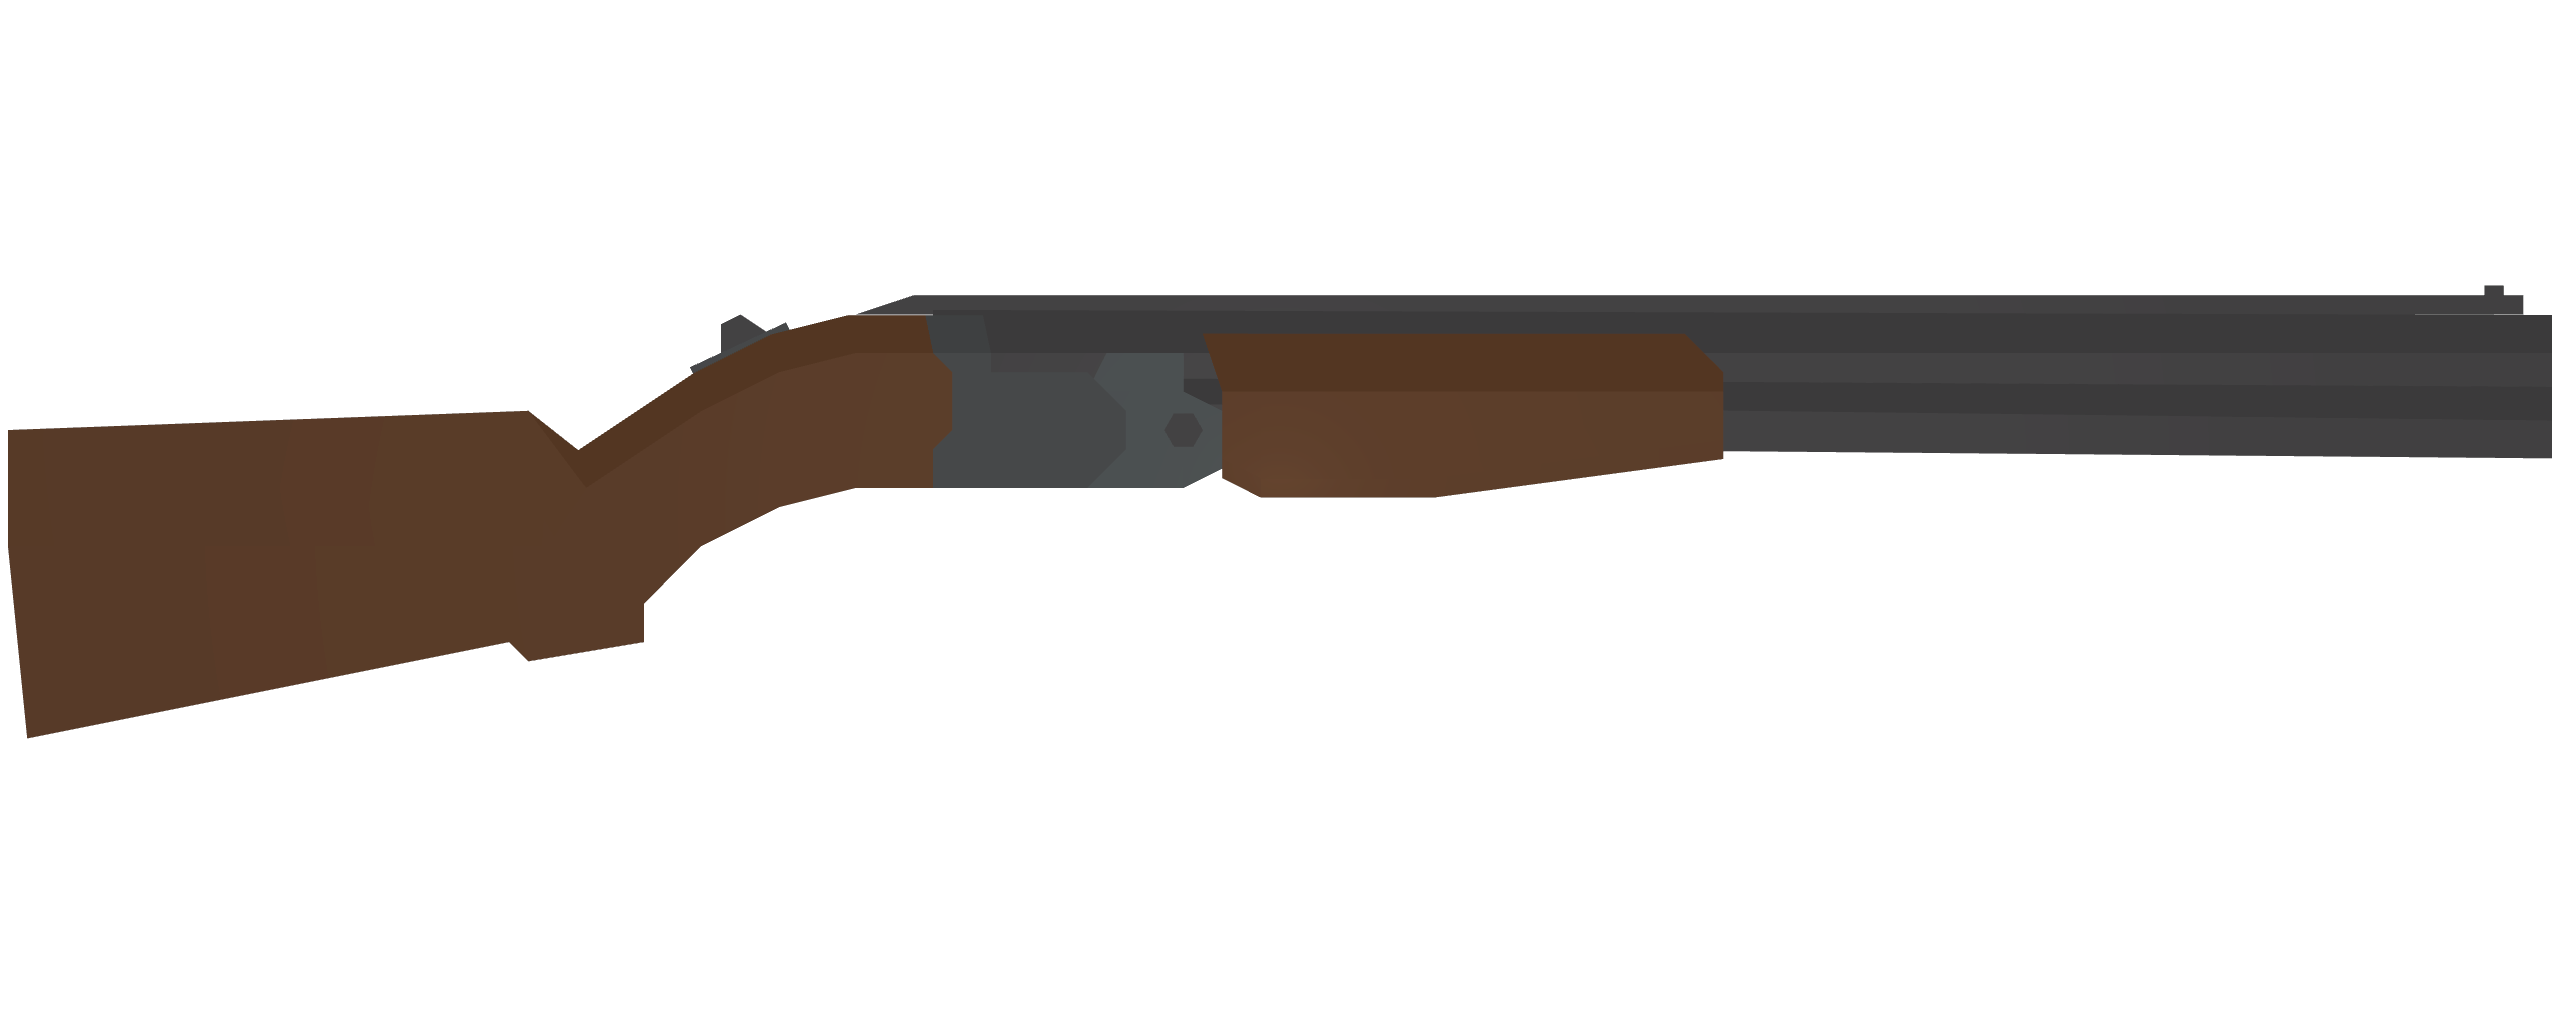 Unturned - All Weapons ID's for Uncreated Warfare Mods - Neutral Weapons - 43D6AFC